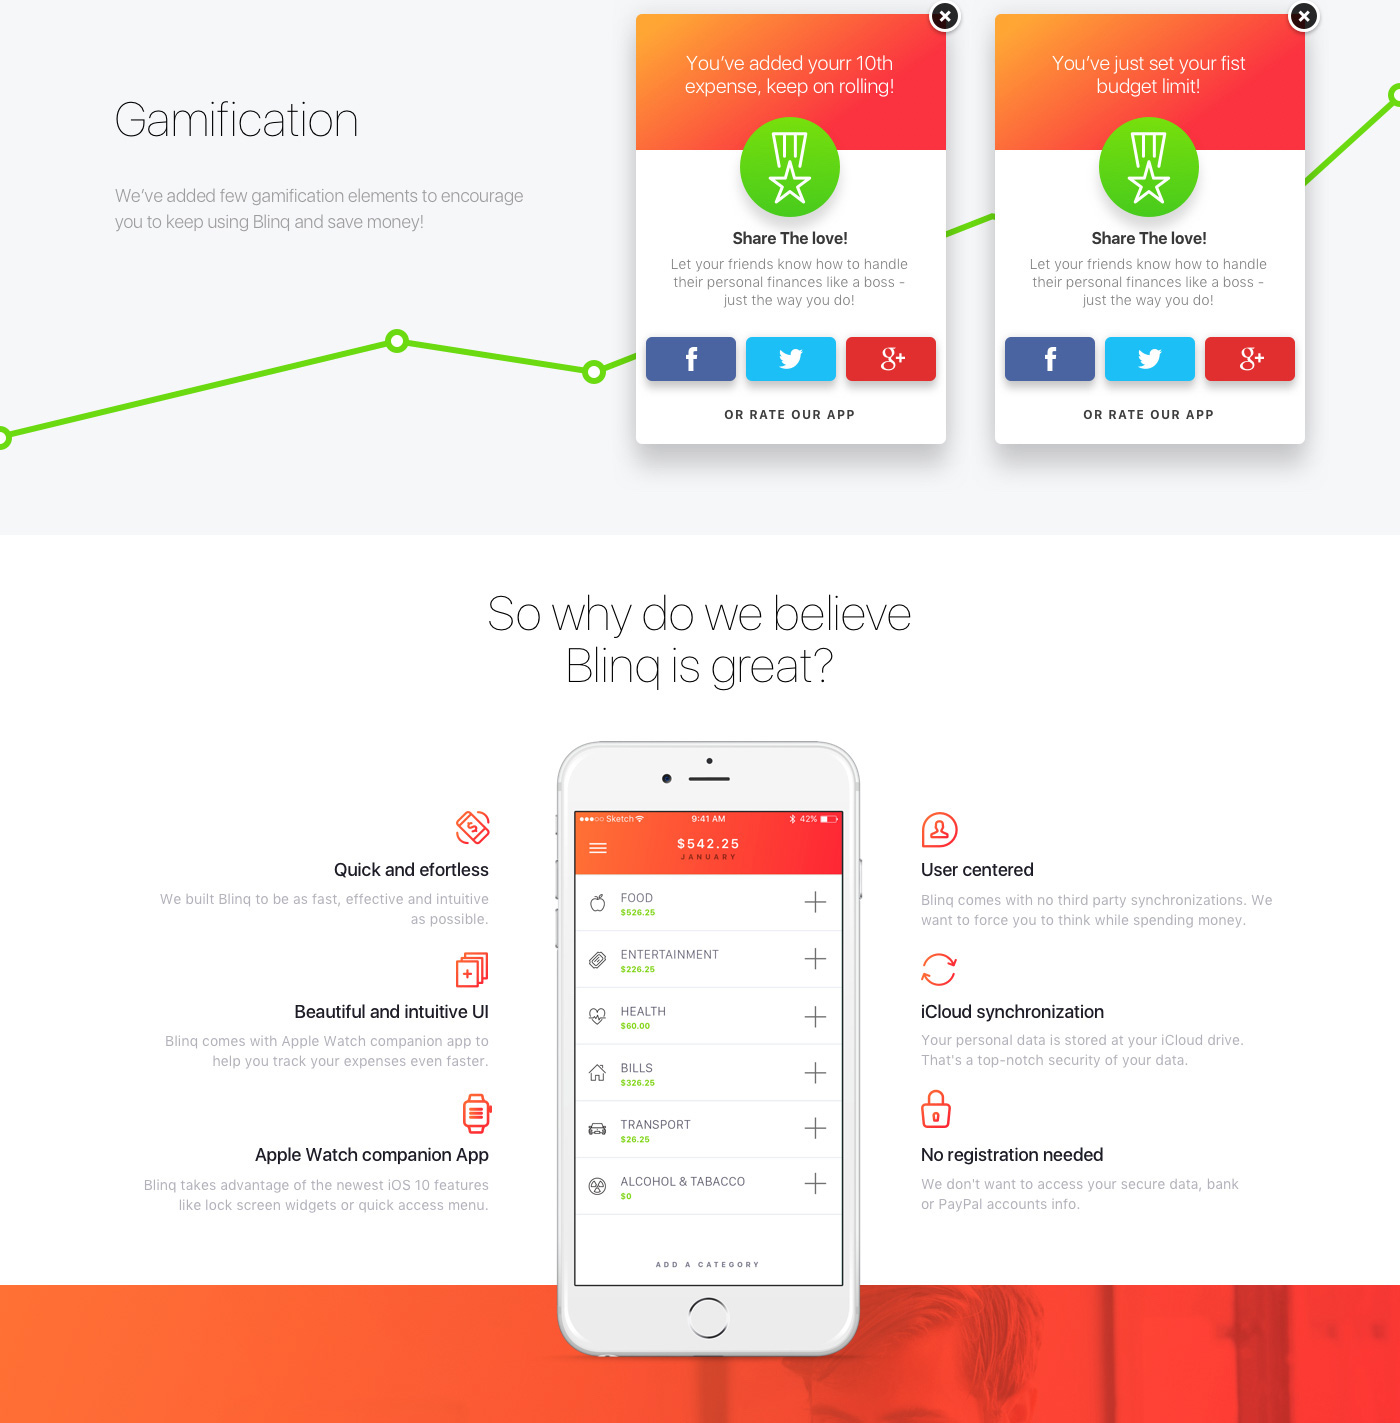 finance money app iphone mobile Budget home Manage expence track